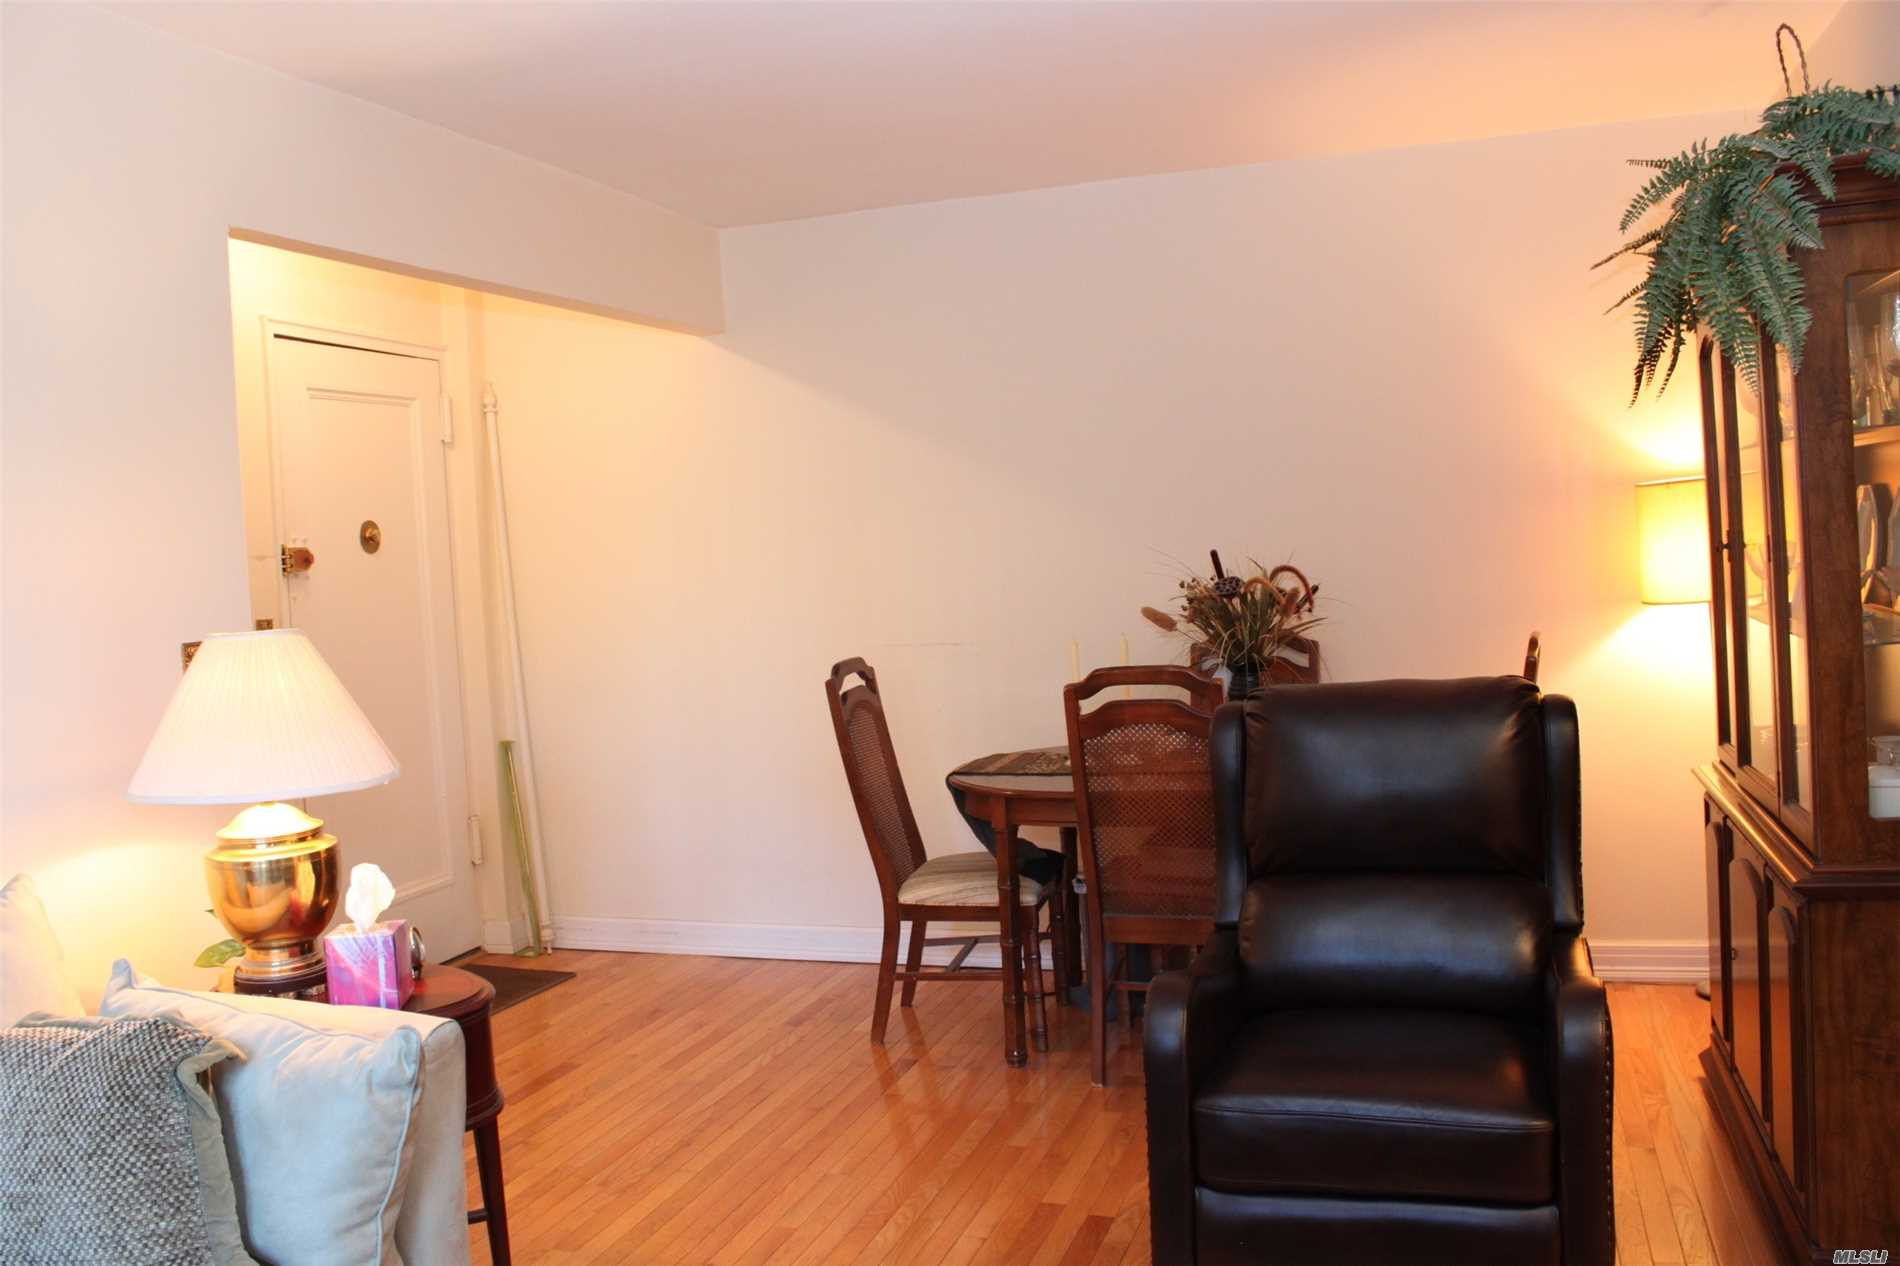 Don't Miss This Super Affordable Apartment In The Heart Of Queens. This One Bedroom Space Has Been Meticulously Maintained And Is In Move-In Condition. Make This Purchase And Own For Less Than Rent. Enjoy Being Conveniently Located With A Short Walk To All Shops And Transportation. Lirr To Penn In Less Than 15 Minutes. Also Walk To E&F Or J&Z Subway. Busses To Jfk.